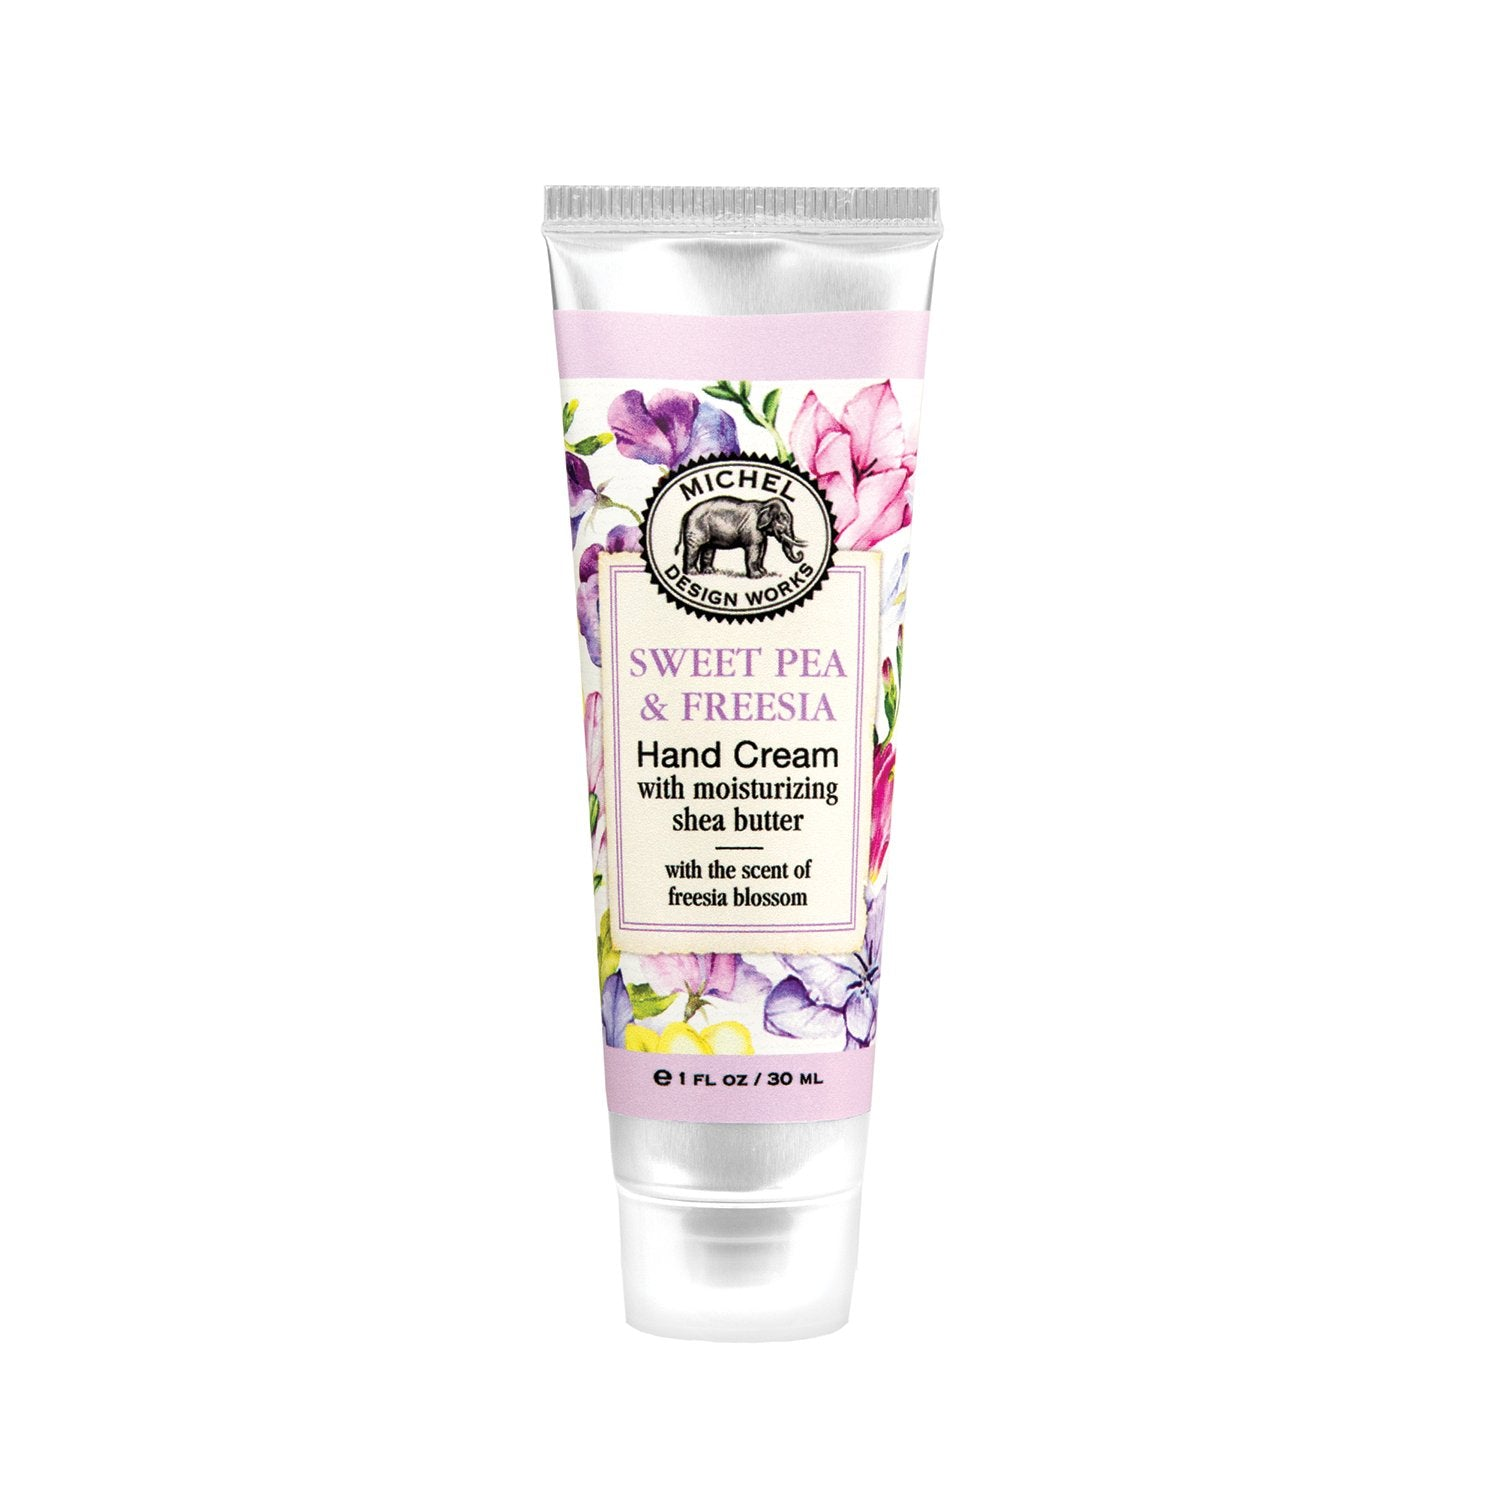 Sweet Pea & Freesia Hand Cream